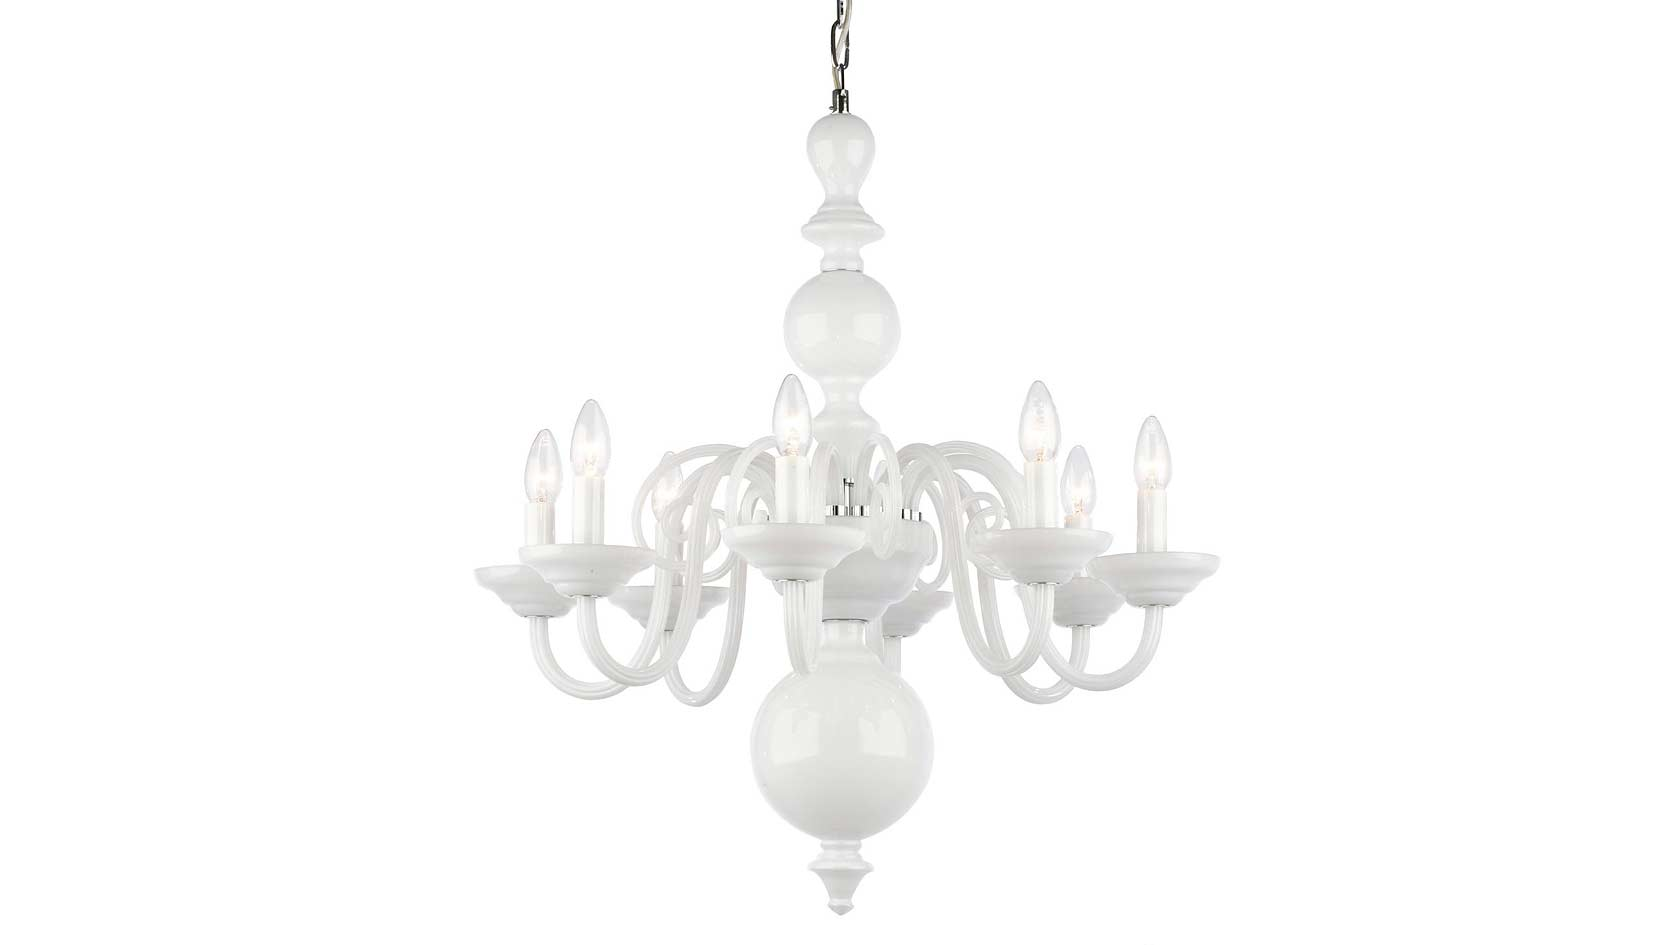 Tulip 8-Arm Chandelier in Opal